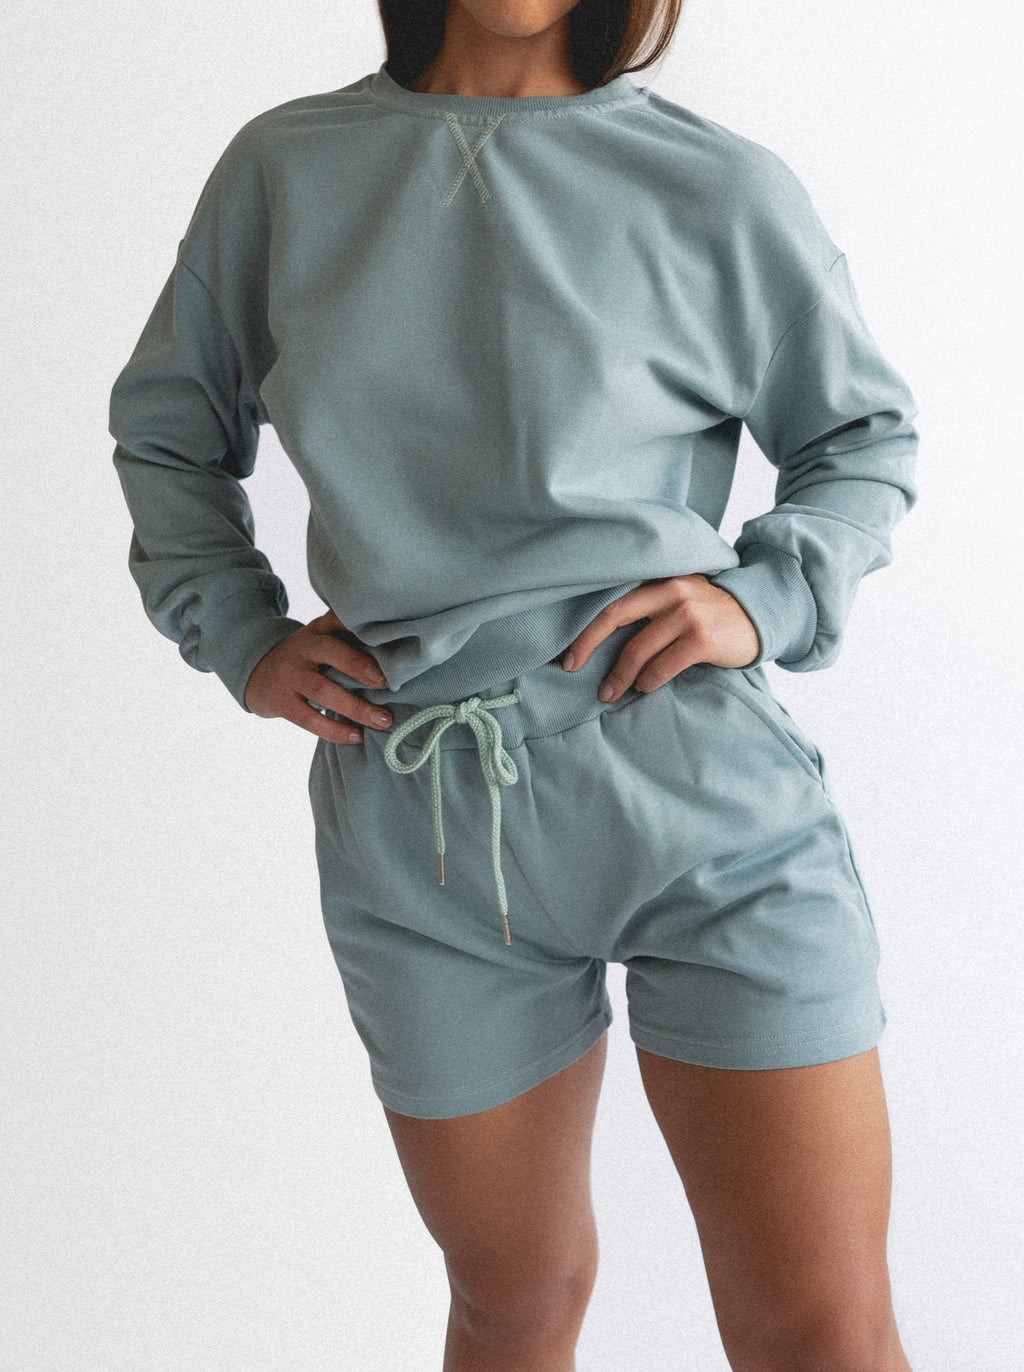 PIJAMA SWEATER - GREEN